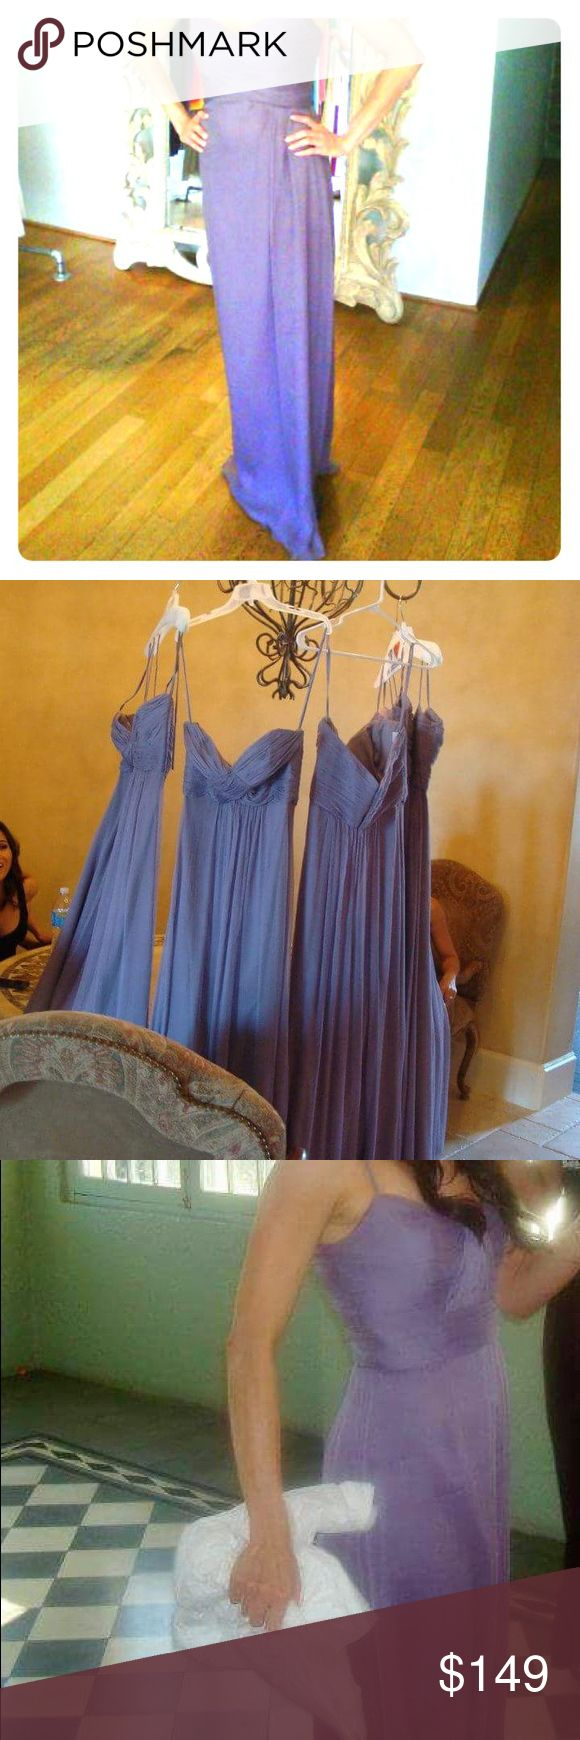 Amsale Bridesmaid Dress Brand: Amsale Dress Item#: G533C Color: Lilac Notes: This dress was worn one time and is in excellent condition. No snags, tears, stains etc. Retails for: $400.00 Amsale Dresses Wedding